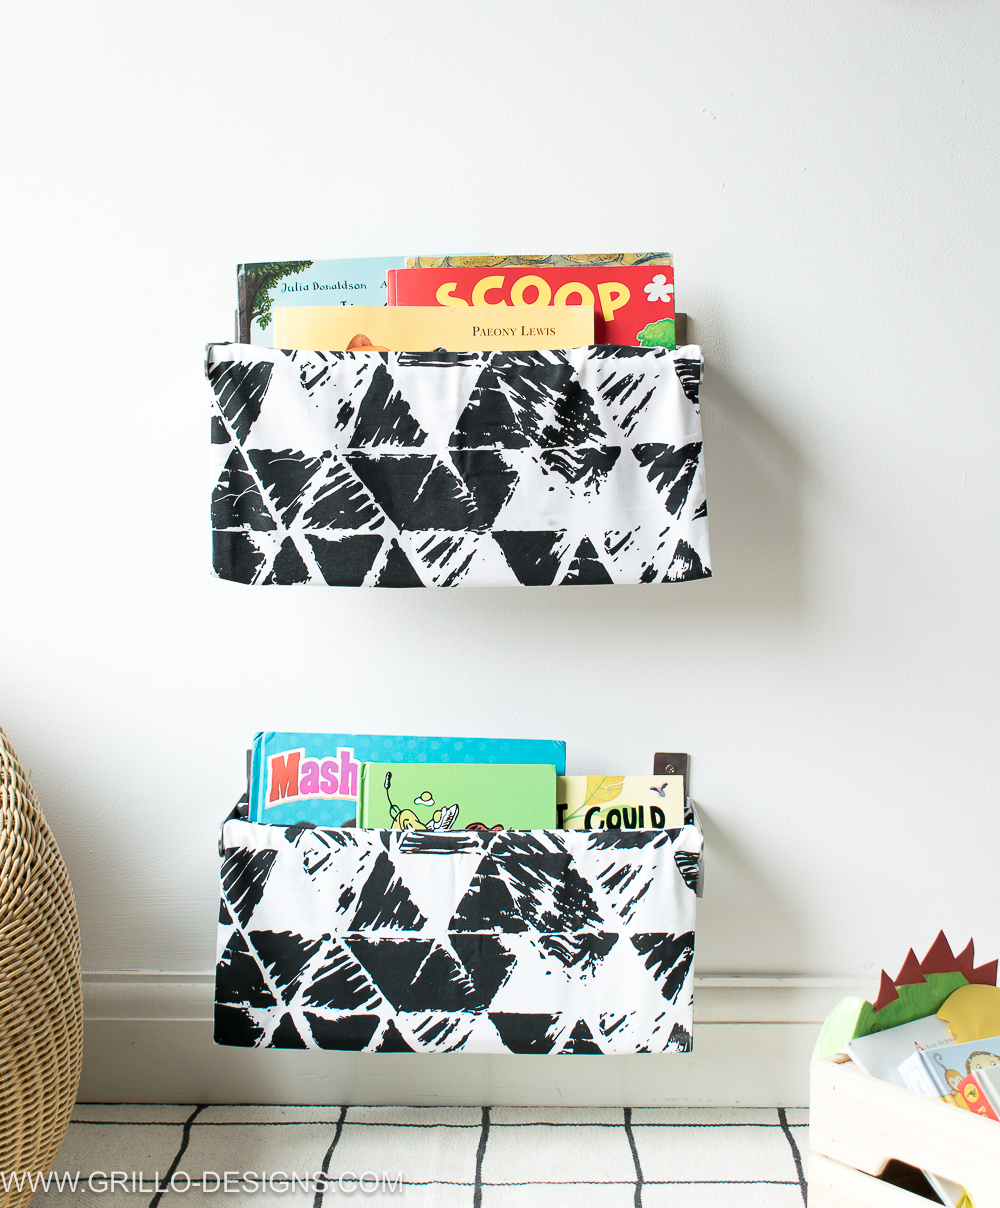 Quick tutorial on how to make a diy book sling for kids book storage / Grillo Design www.grillo-designs.com